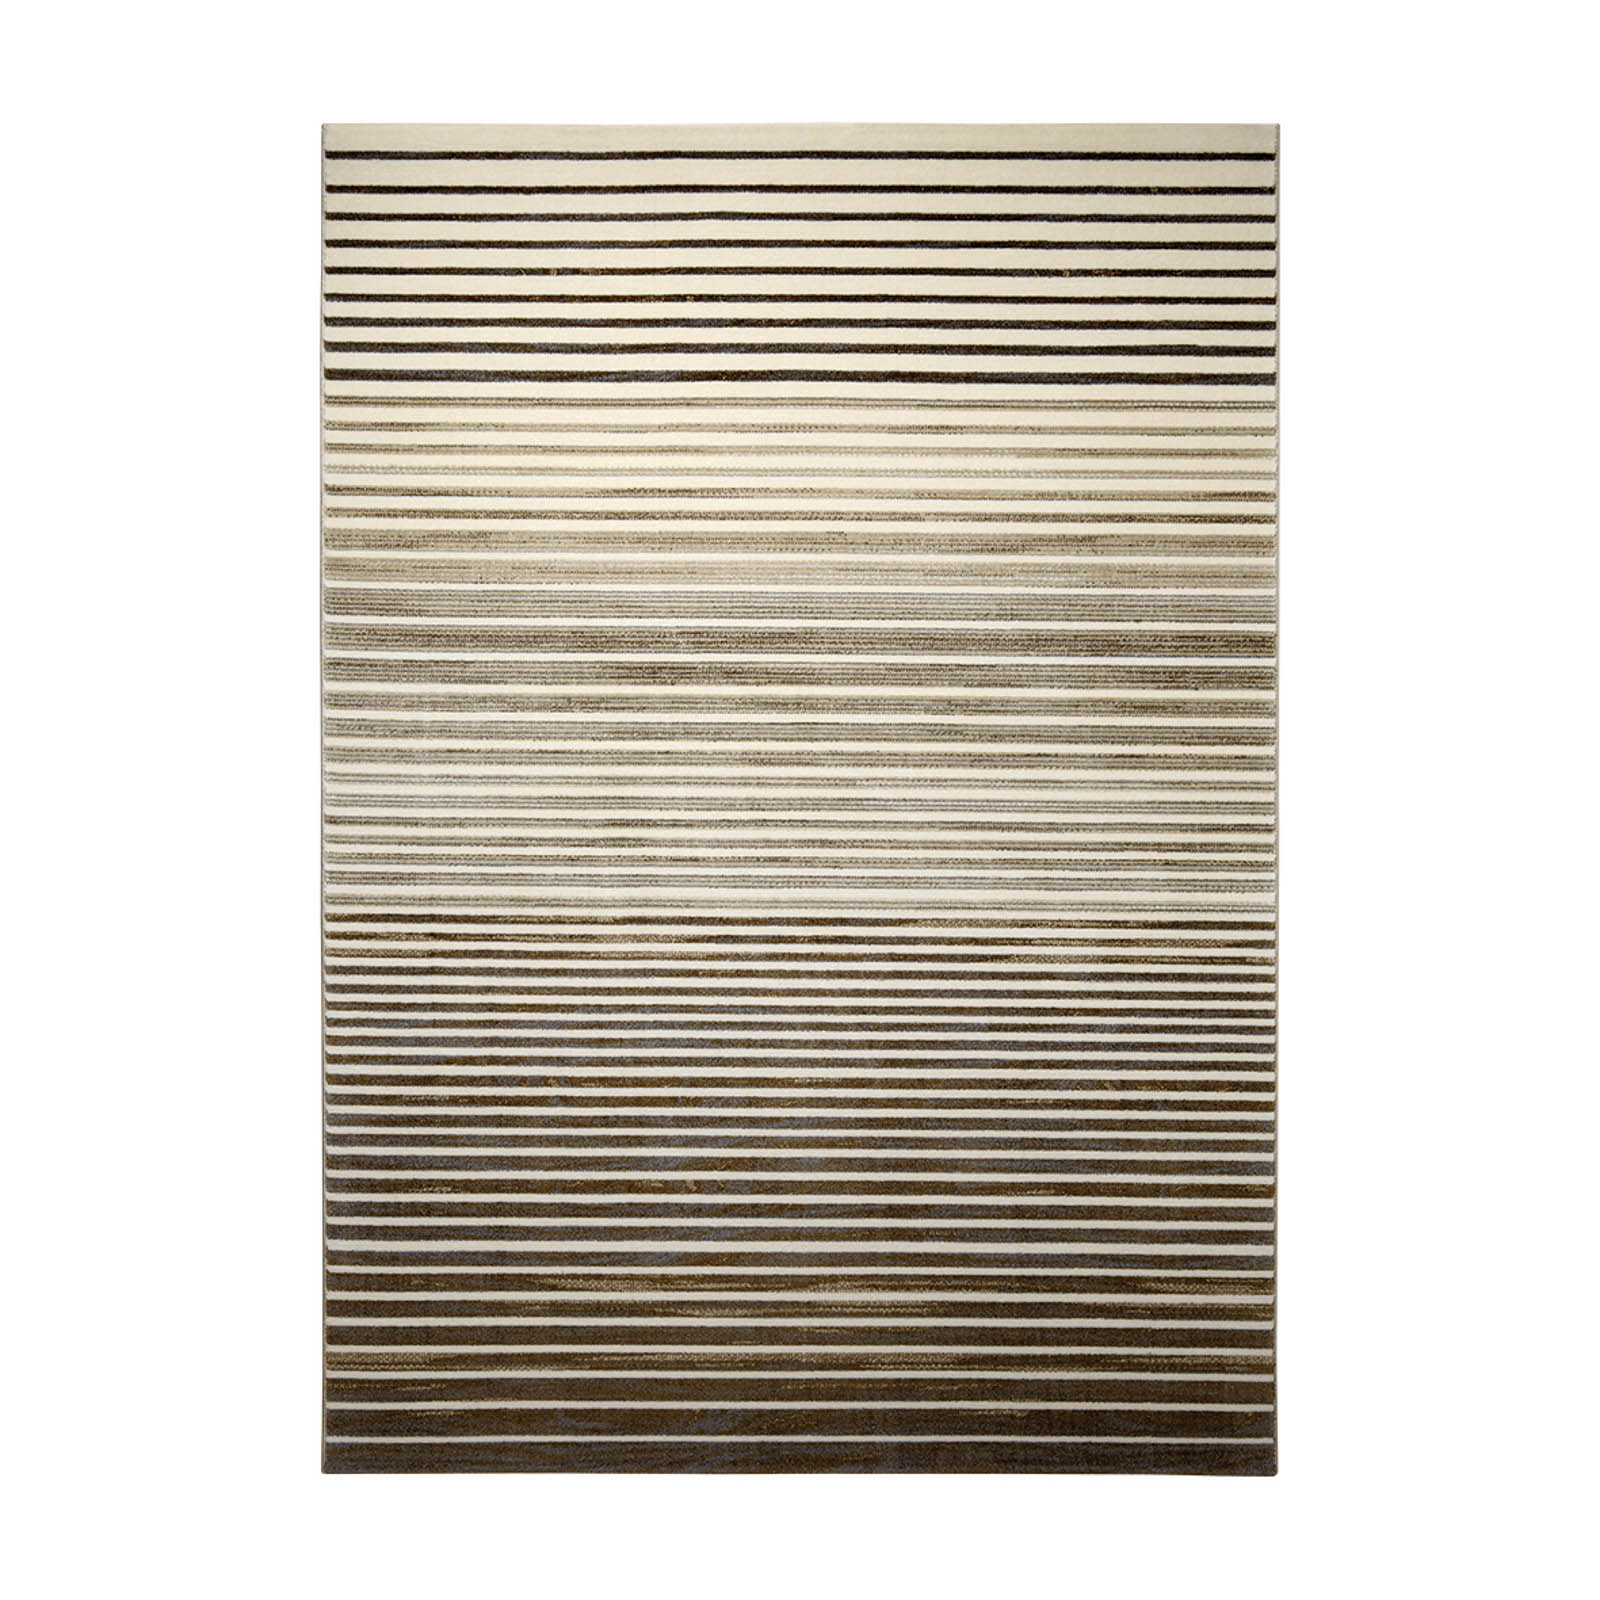 Nifty Stripes Rugs 0730 01 in Brown and Beige by Esprit